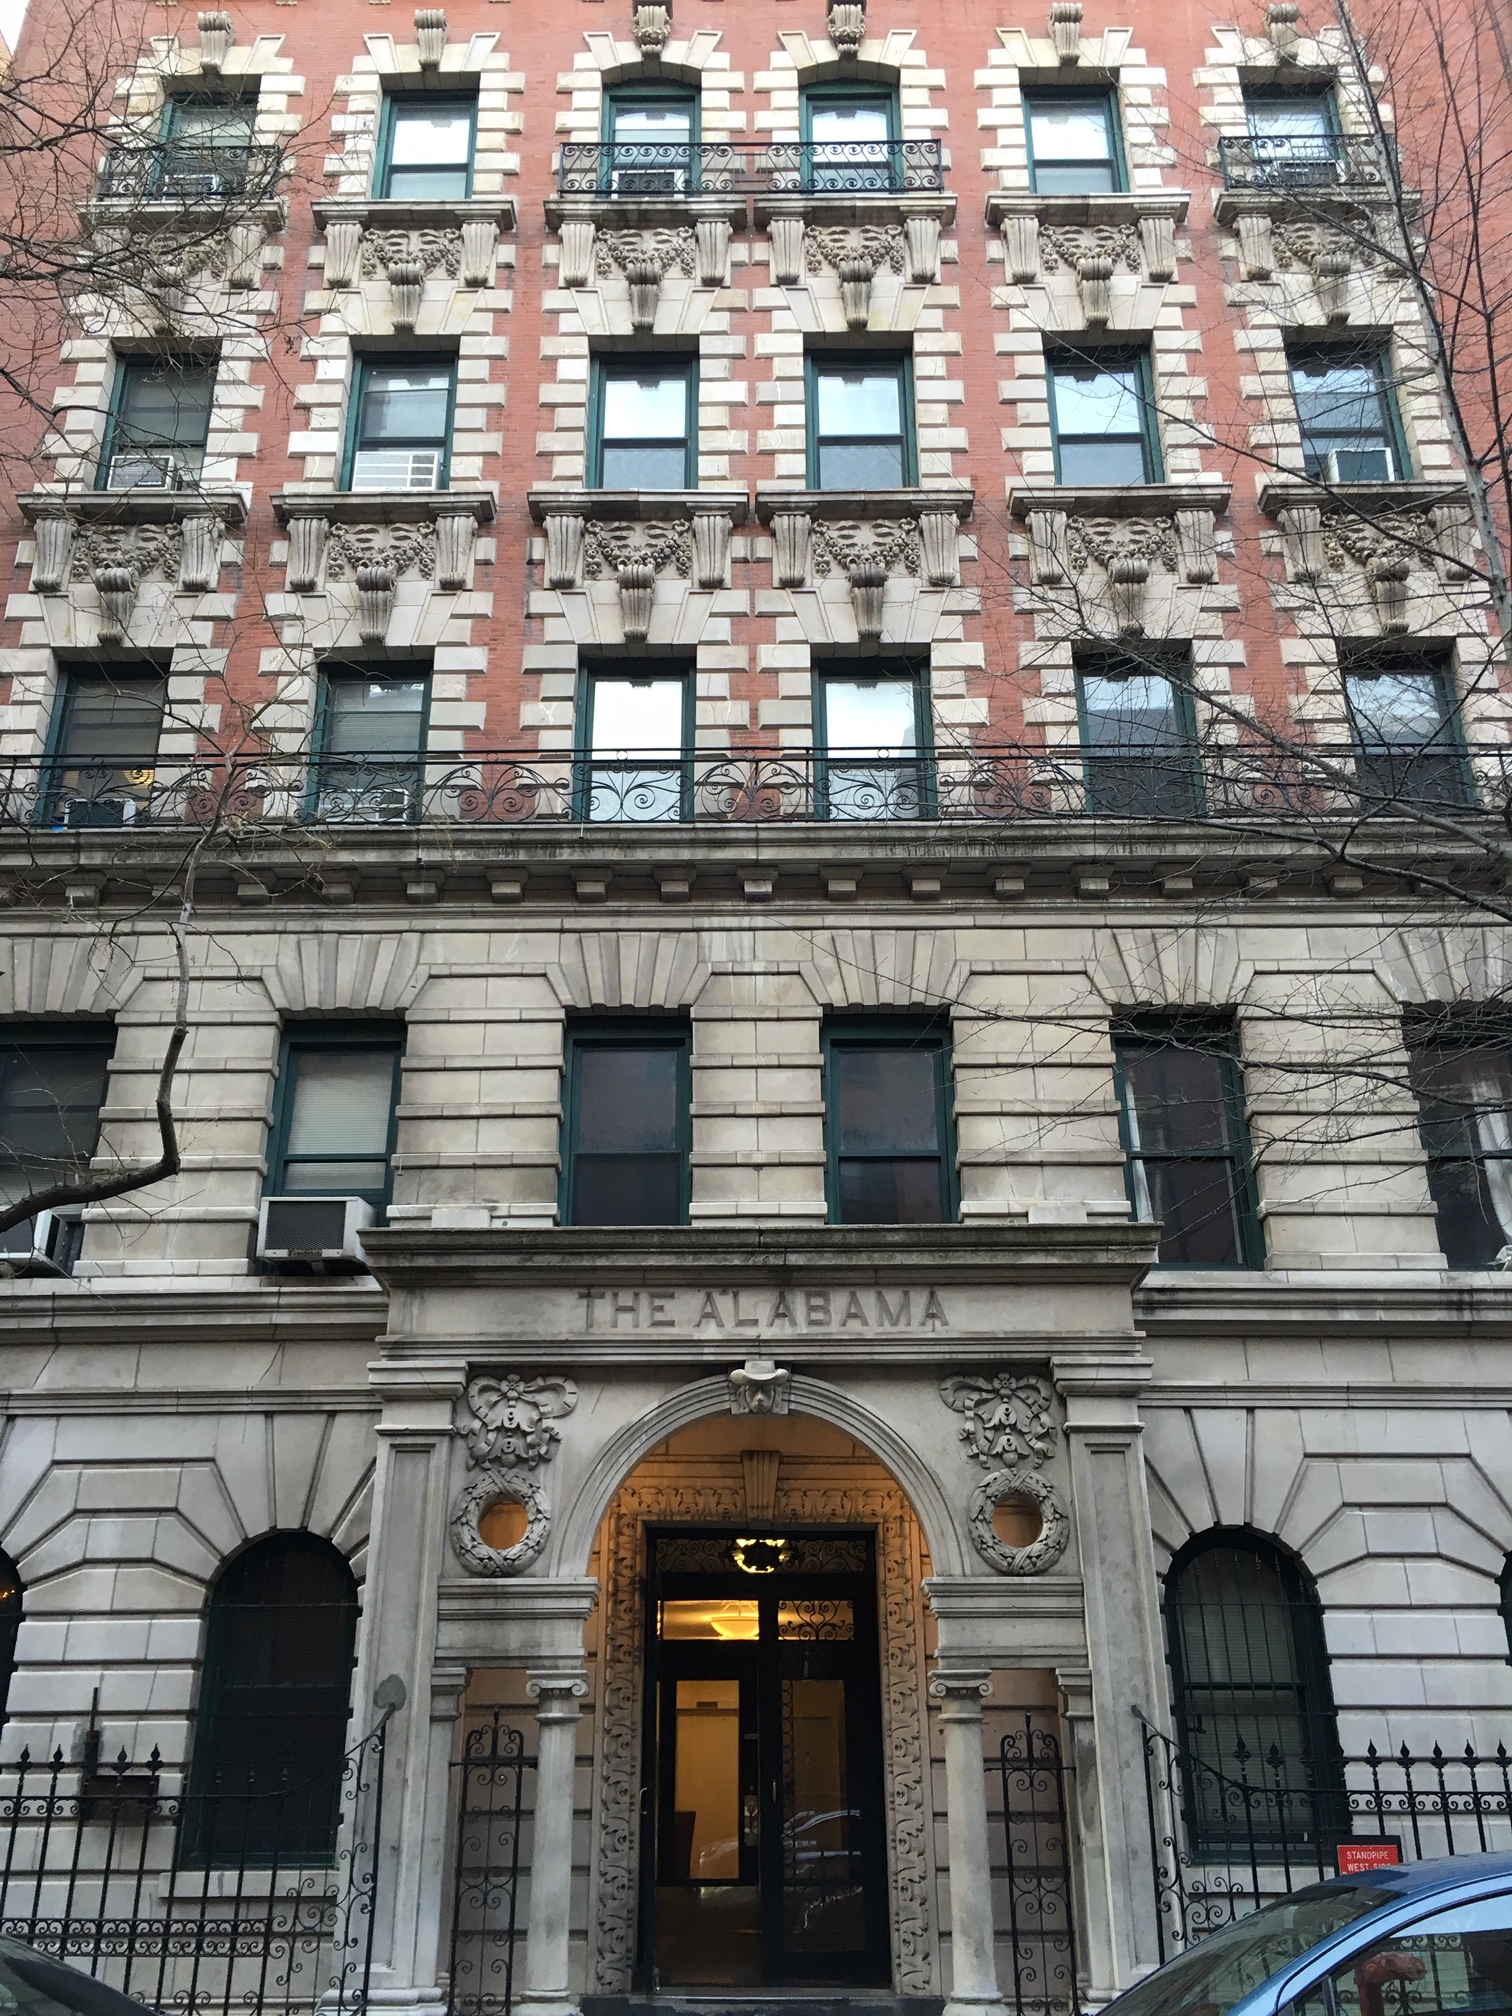 who is the man on a greenwich village building